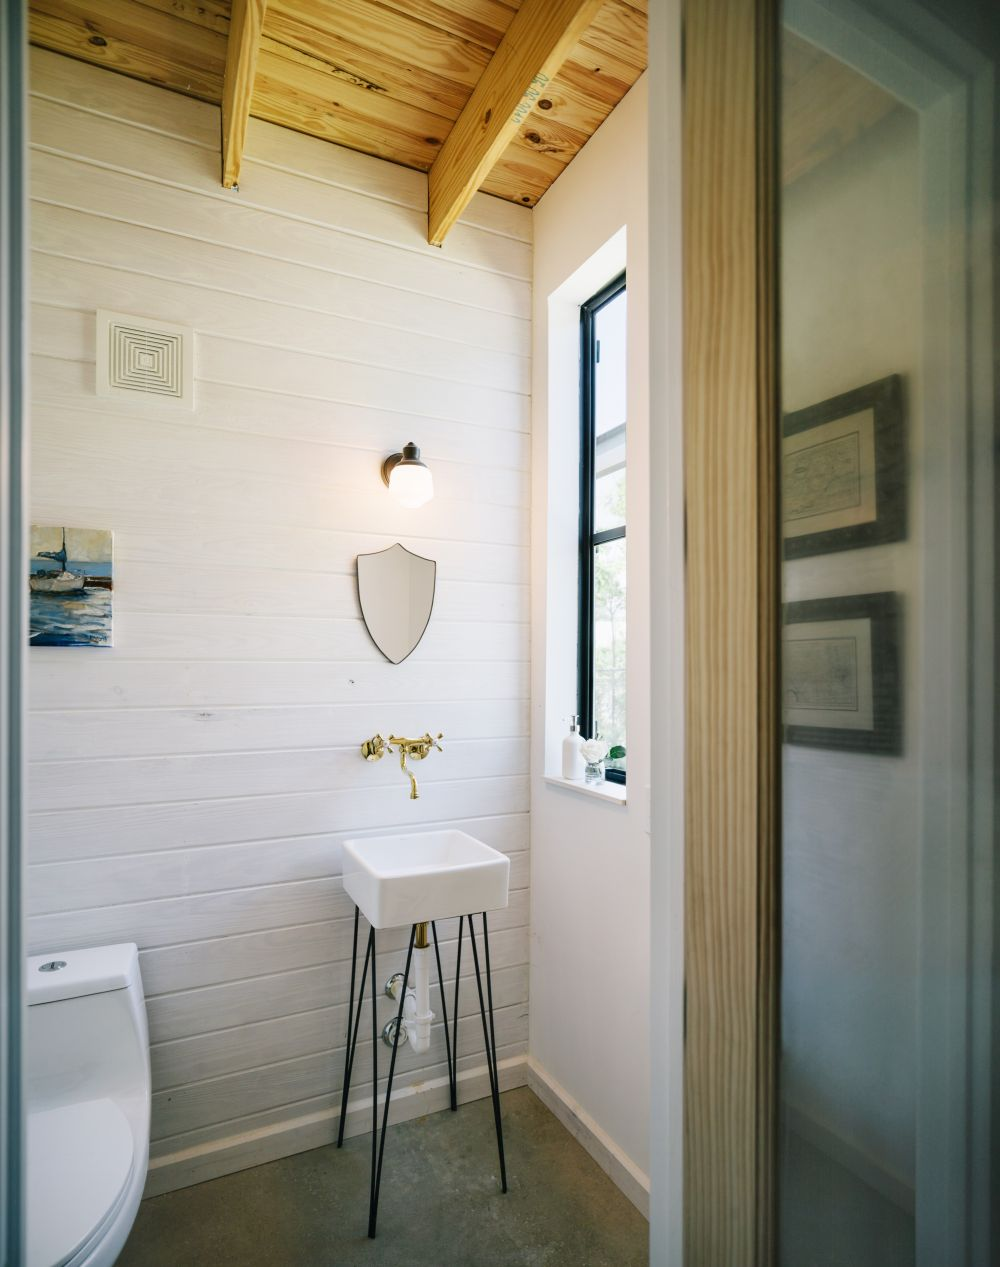 Although tiny, this bathroom doesn't look cluttered and that's all thanks to the interior design